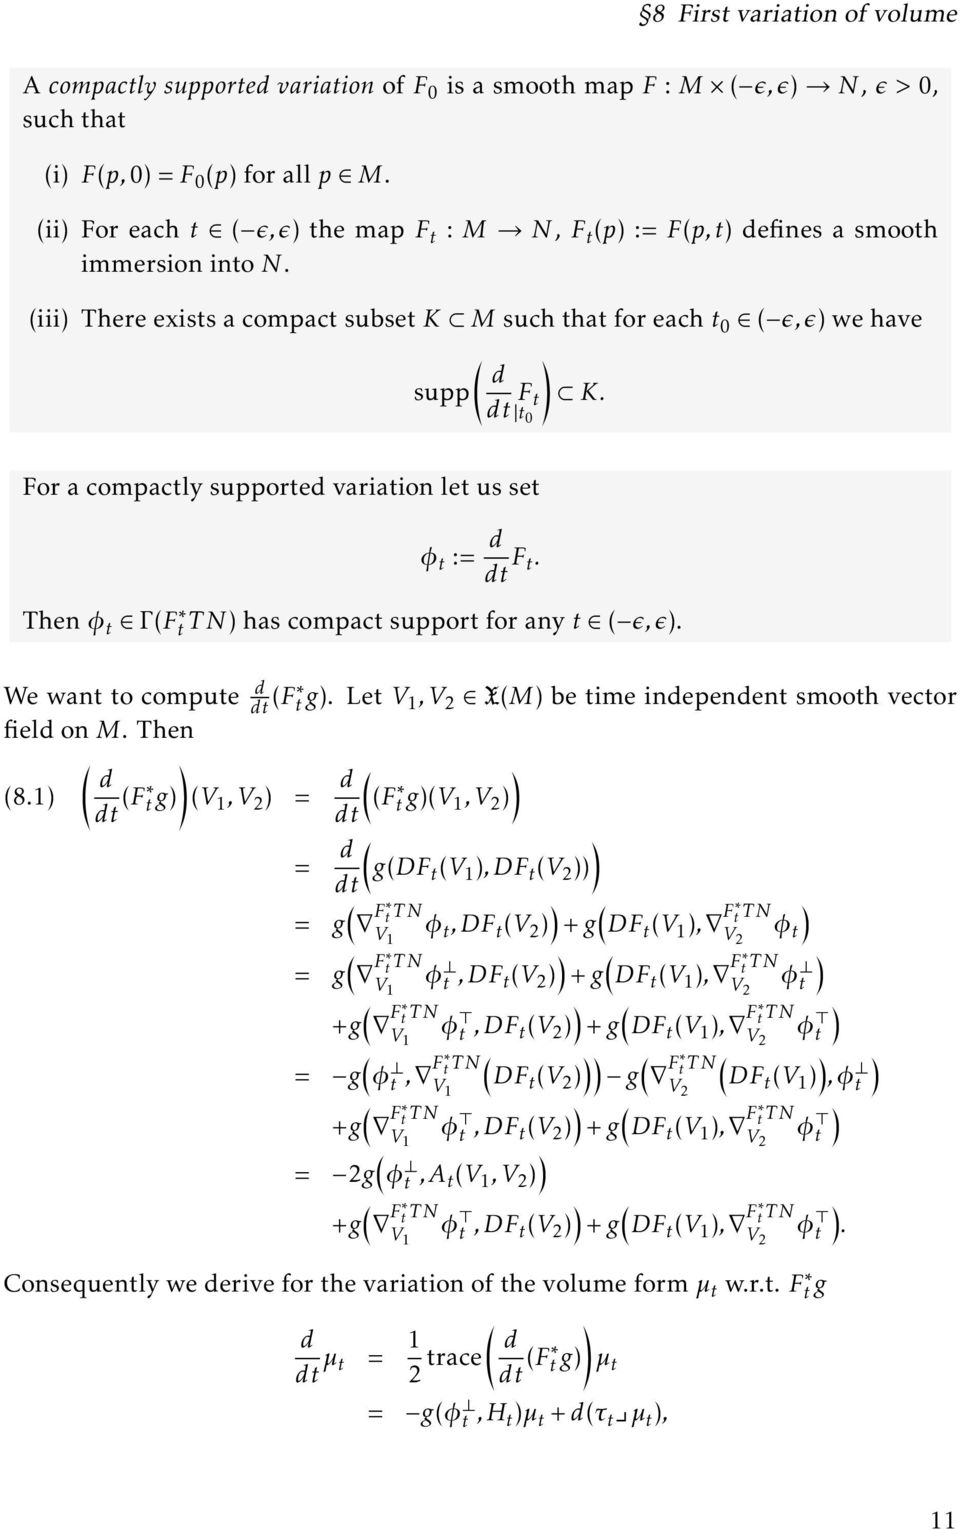 t 0 For a compactly supported variation let us set ϕ t := d dt F t. Then ϕ t Γ (Ft T N) has compact support for any t ( ϵ,ϵ). We want to compute d dt (F t g).